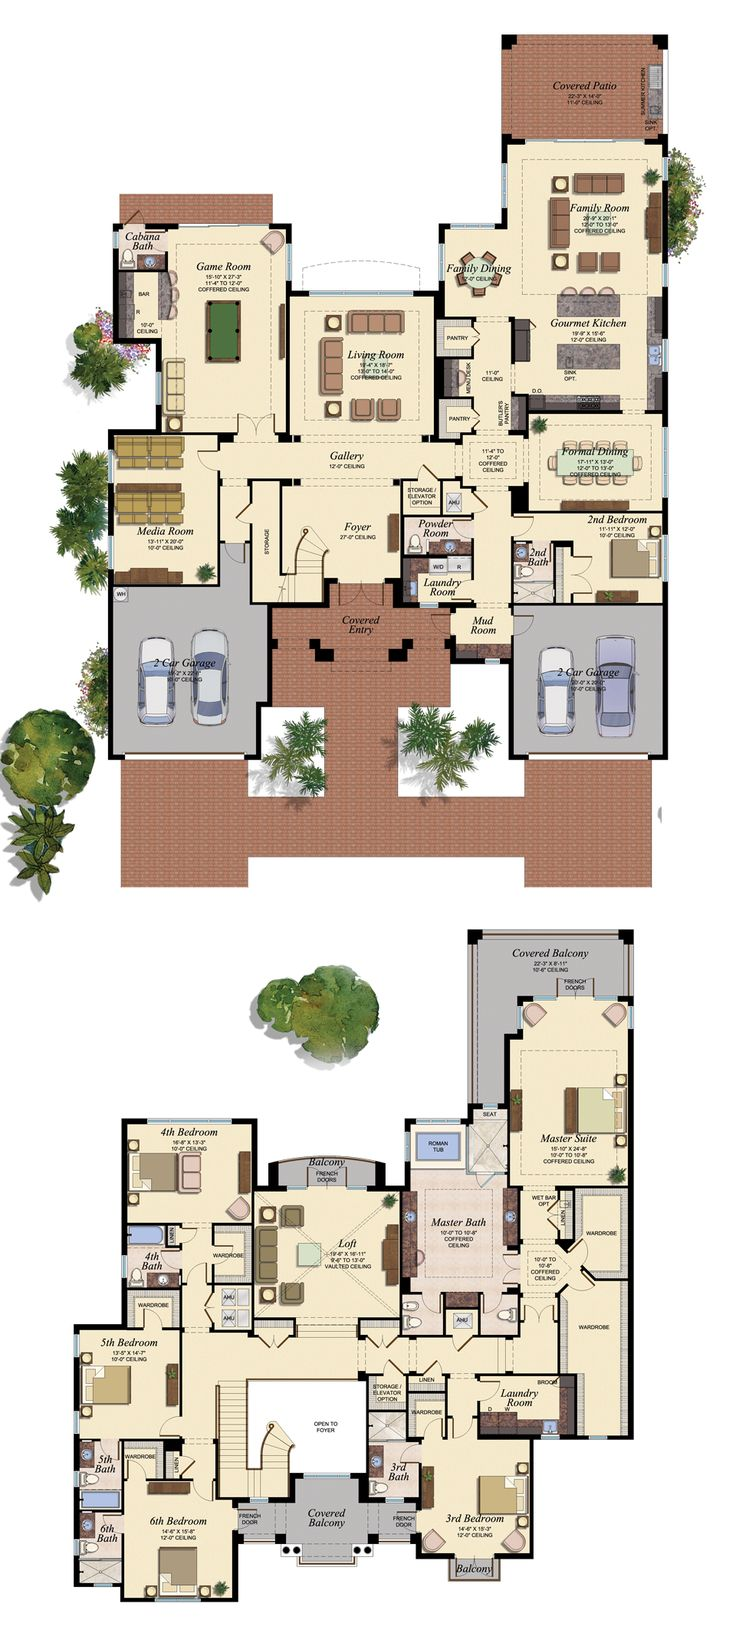 The Oaks at Boca Raton - Lot 3 floor plan